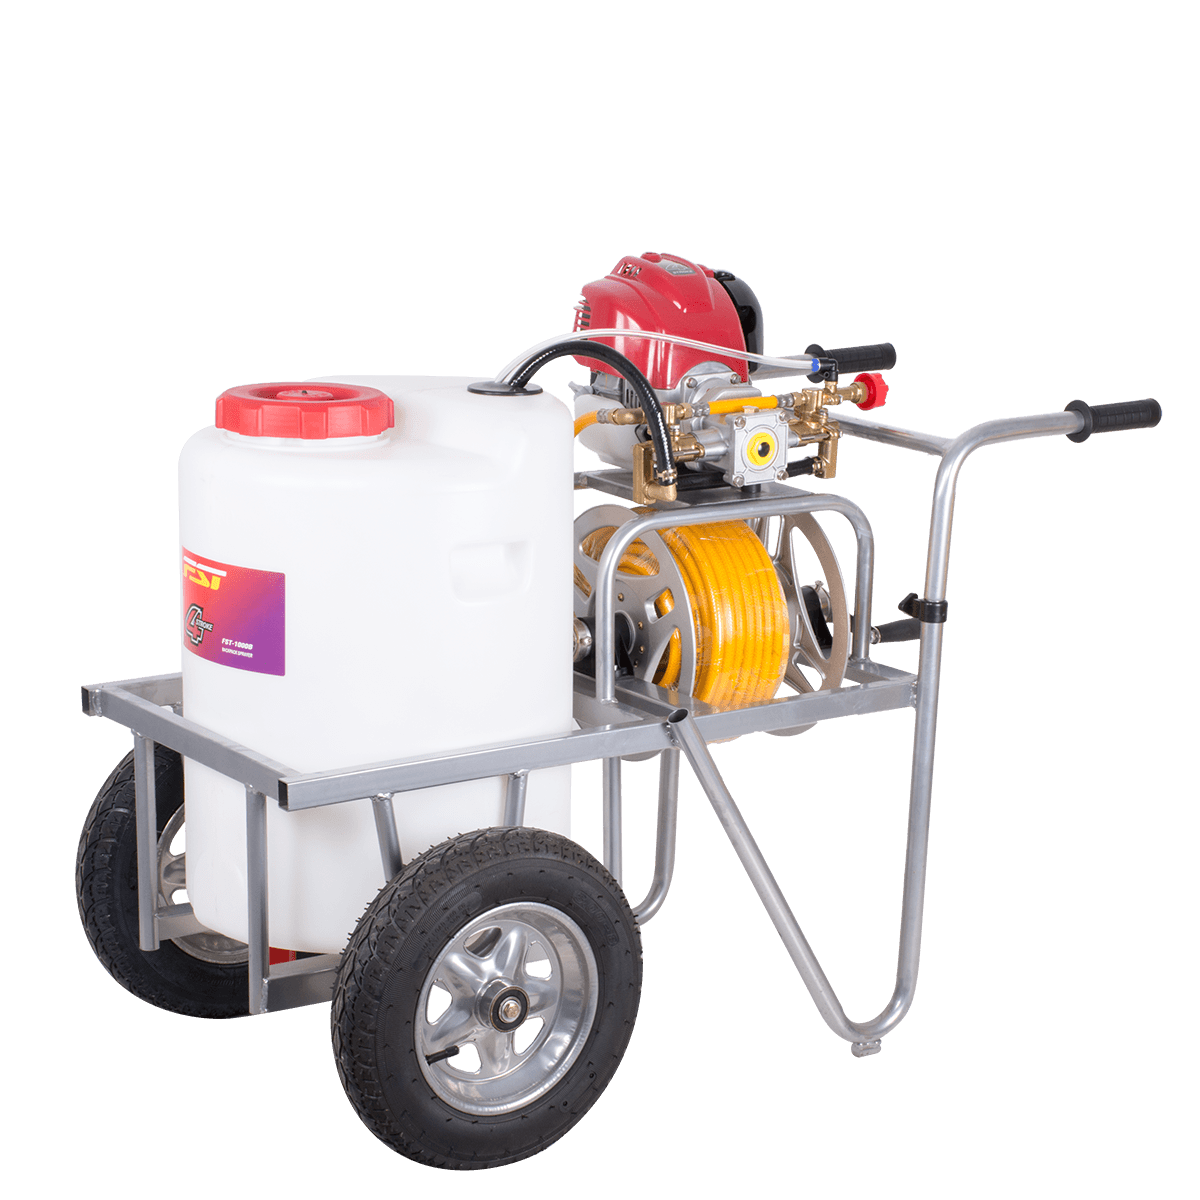 FST-1000B-1 Wheeled Power Sprayer